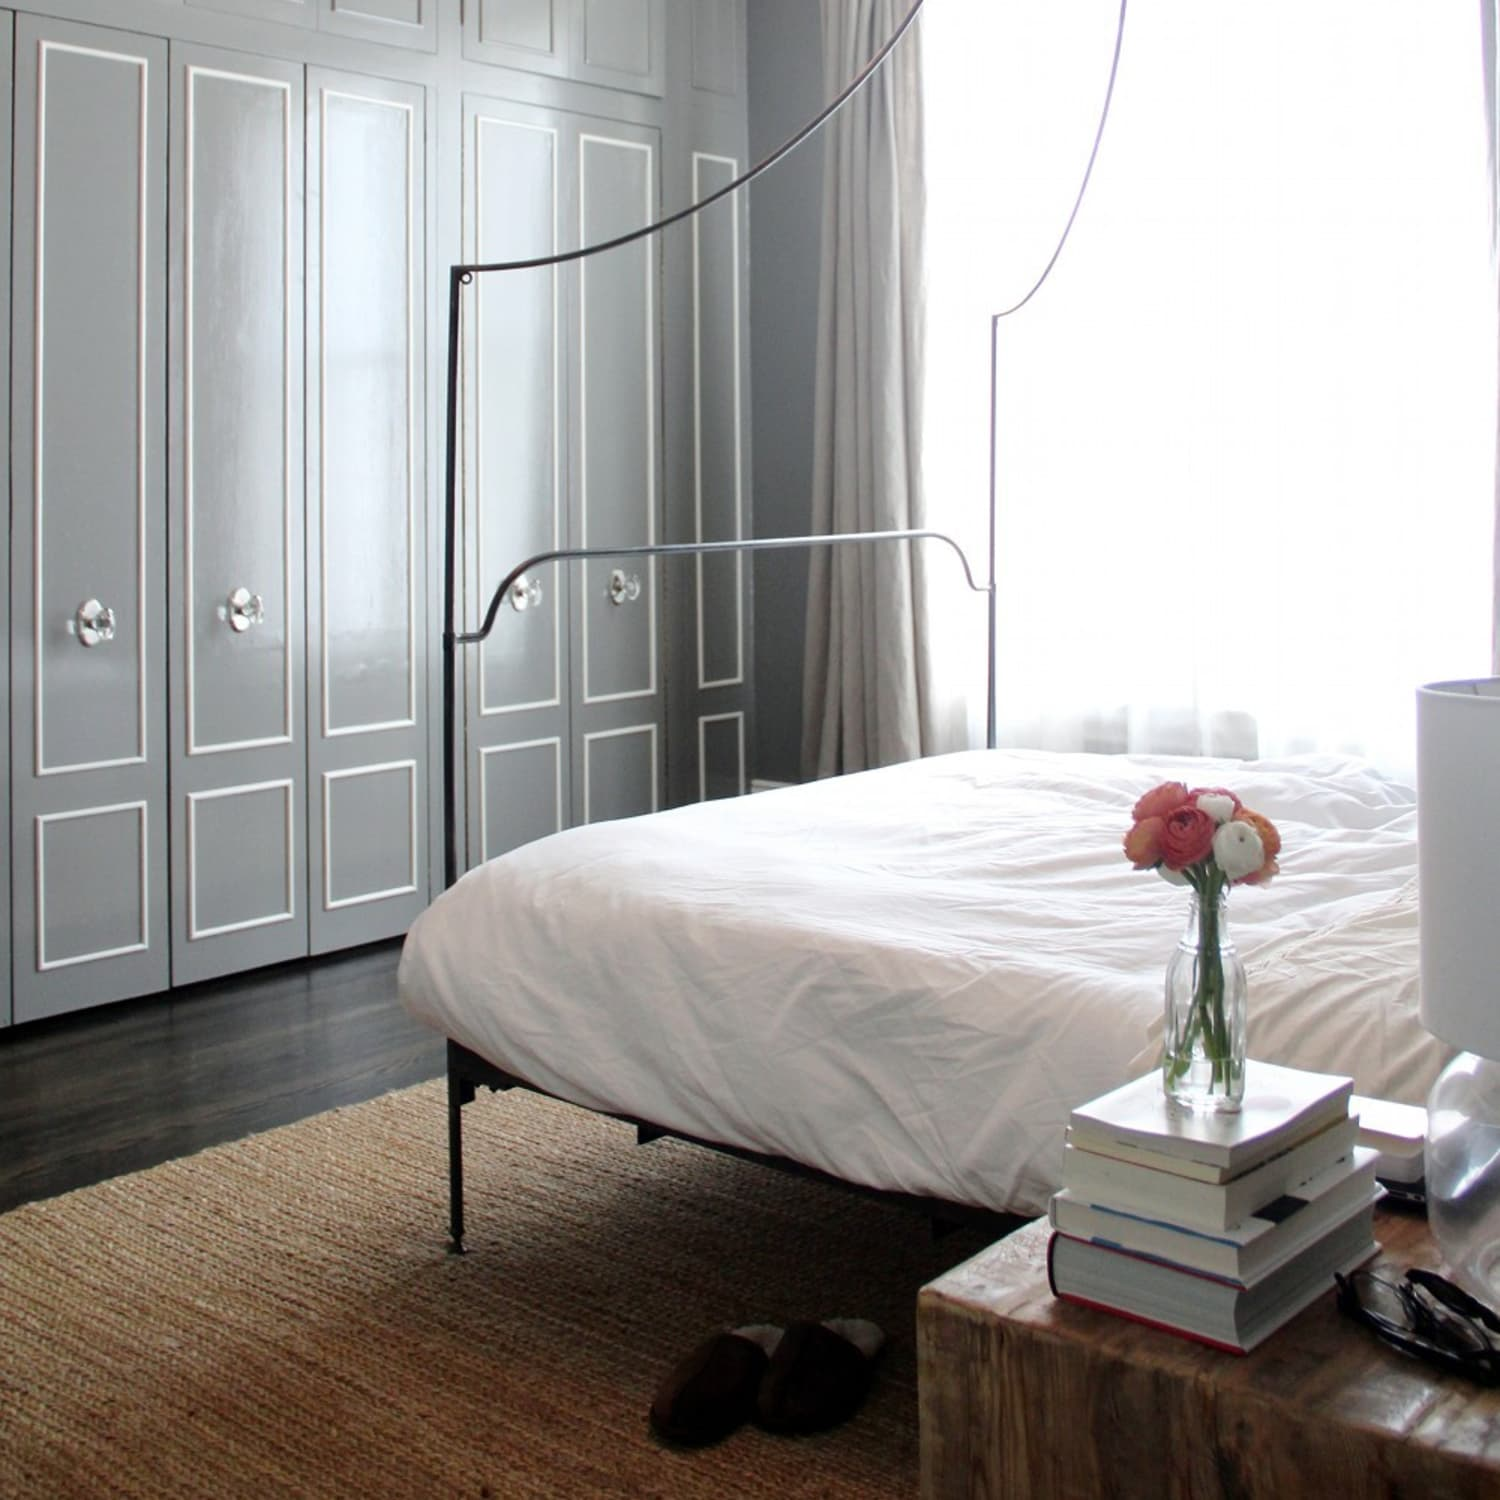 eaefd37e075 10 Ways to Refresh Your Bedroom in Under 30 Minutes | Apartment Therapy